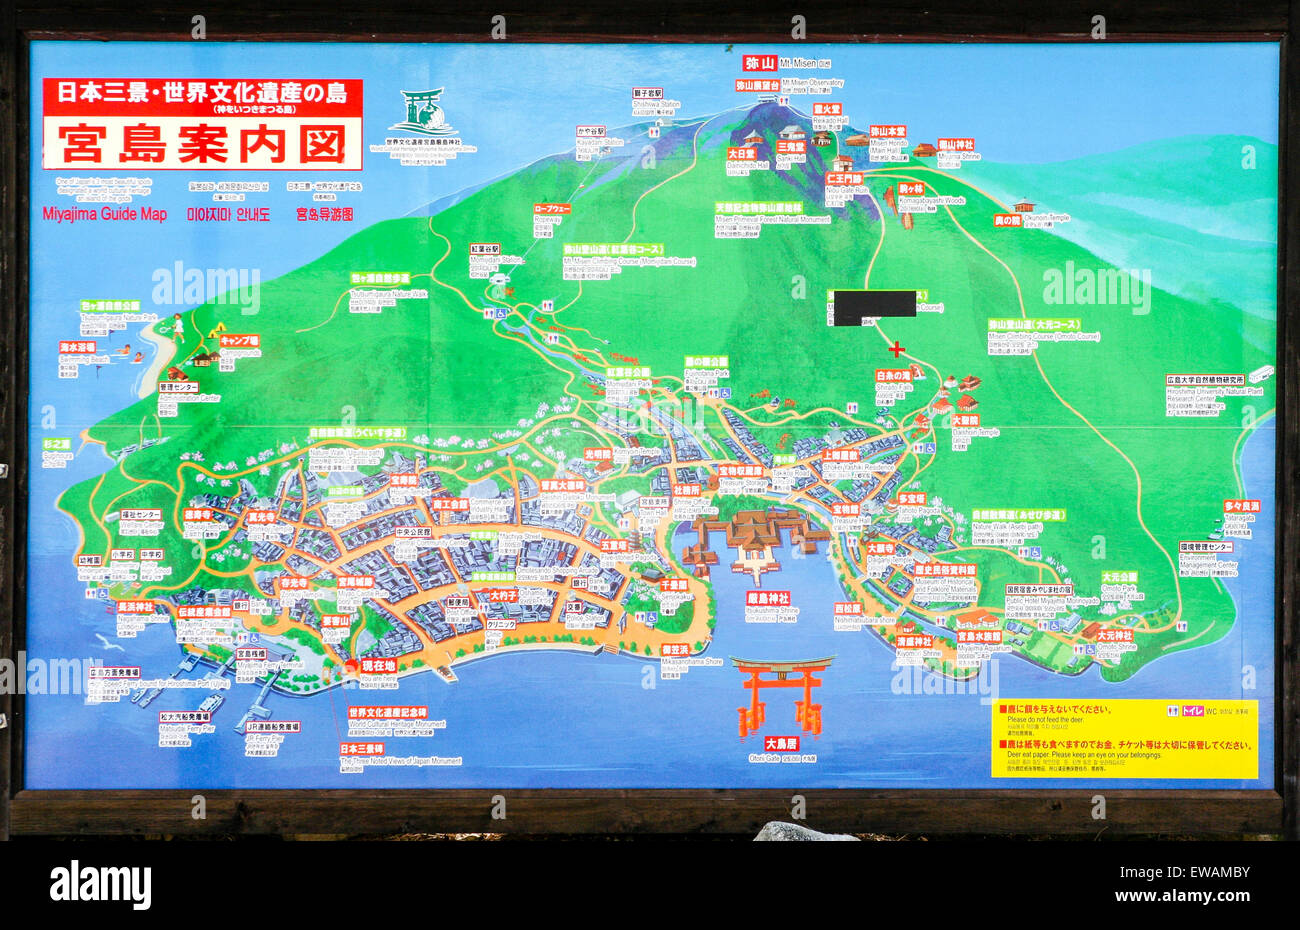 Japan Map With Island Names